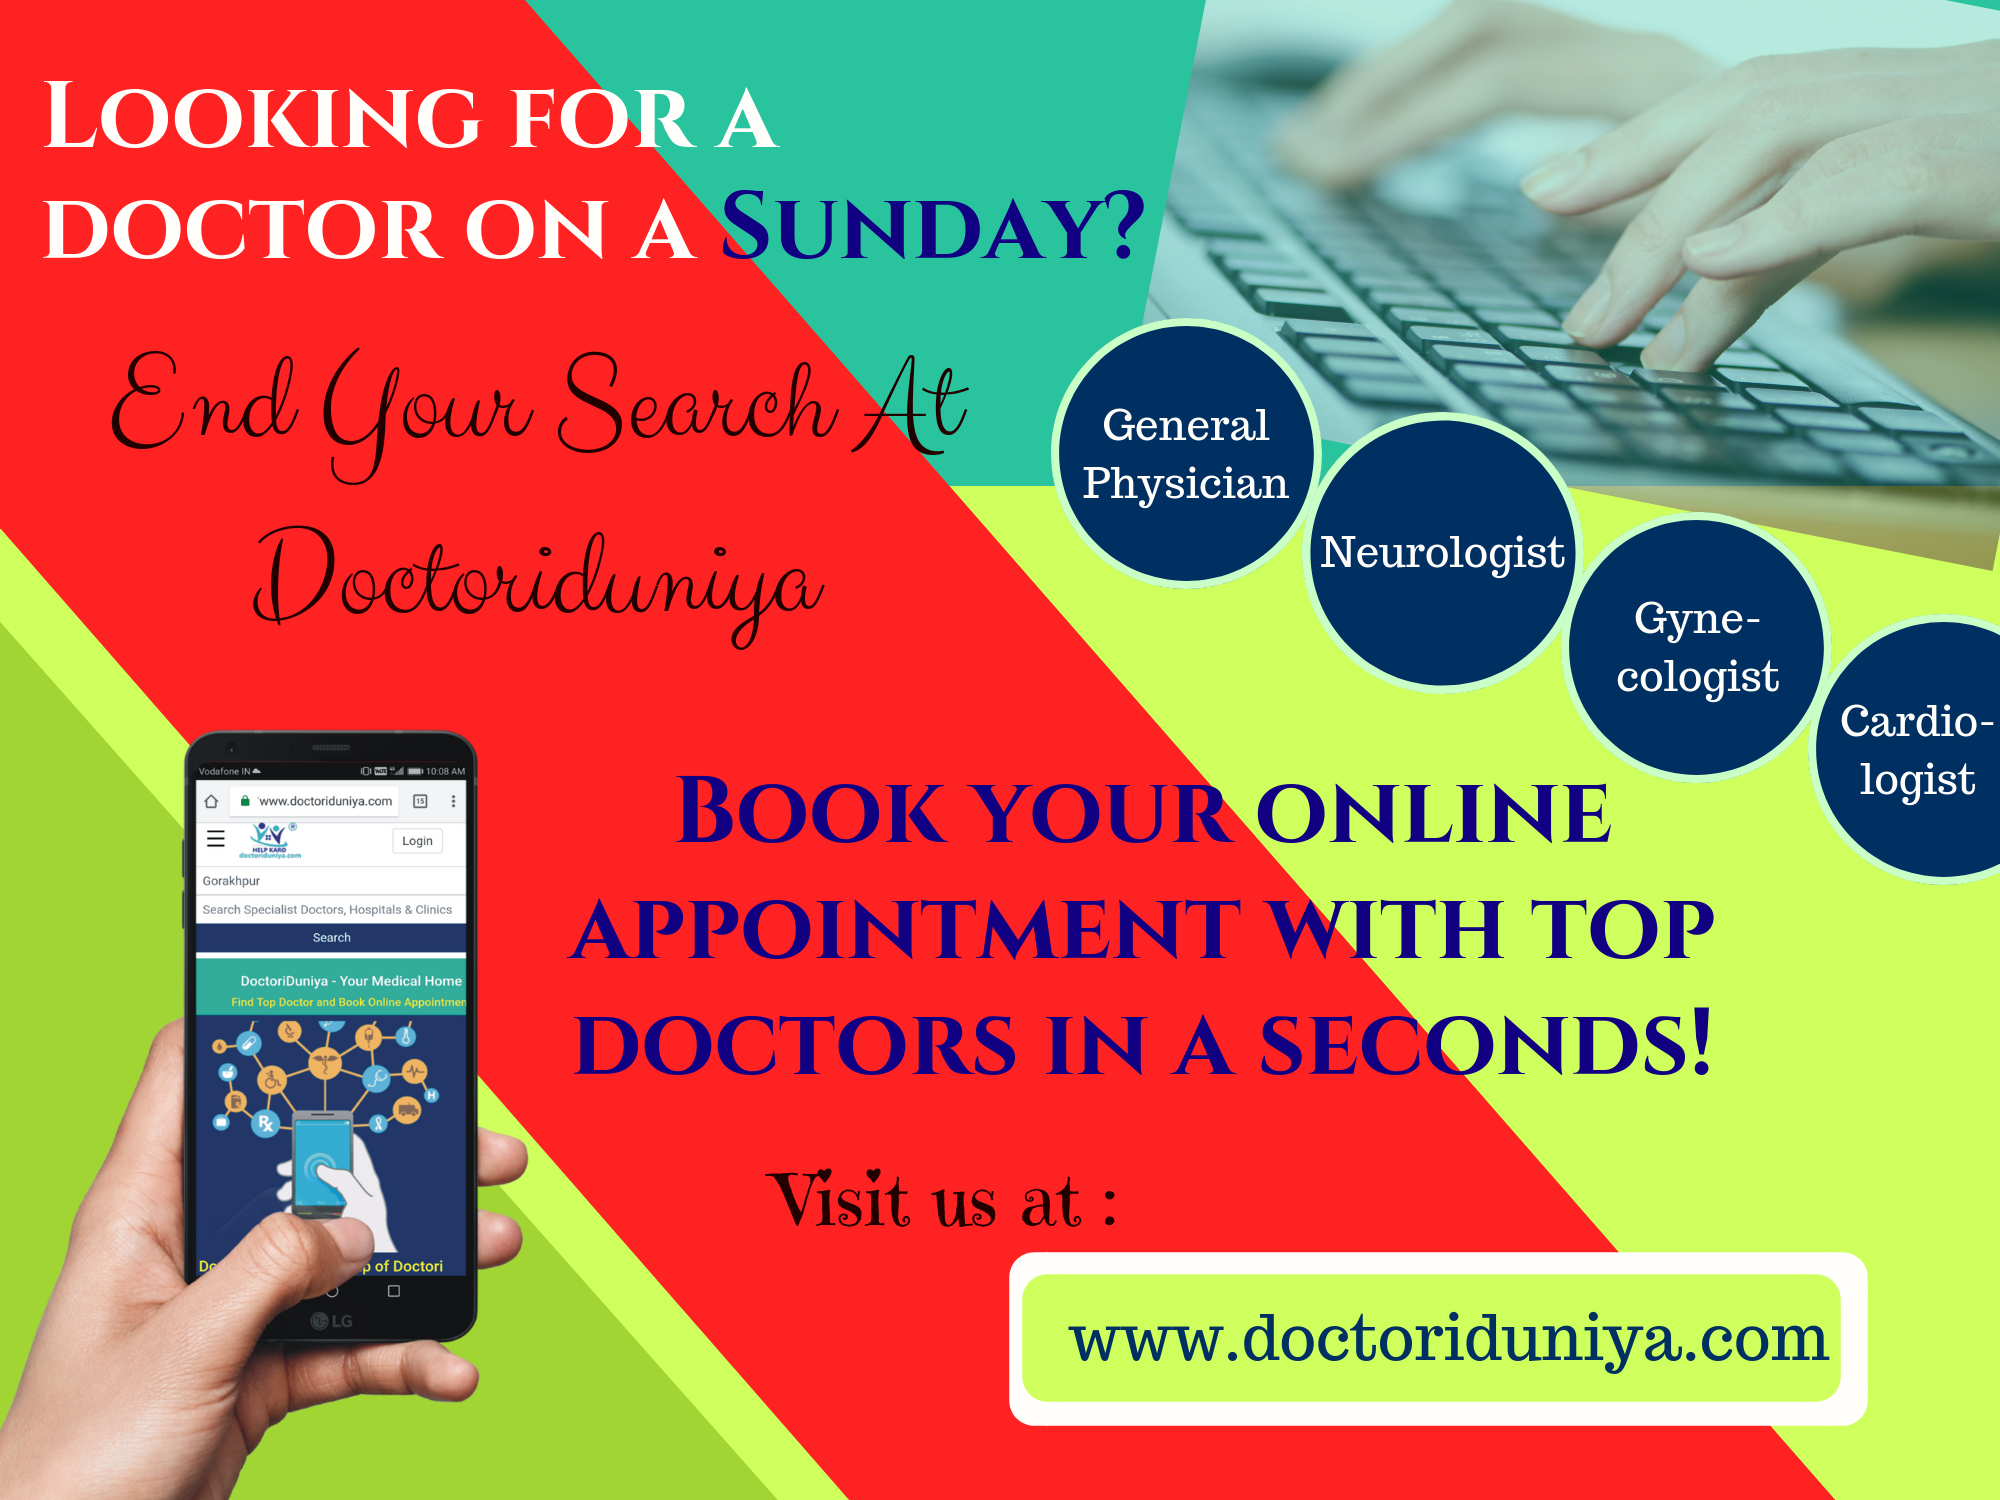 Looking for a doctor on Sunday? Visit at DoctoriDuniya to